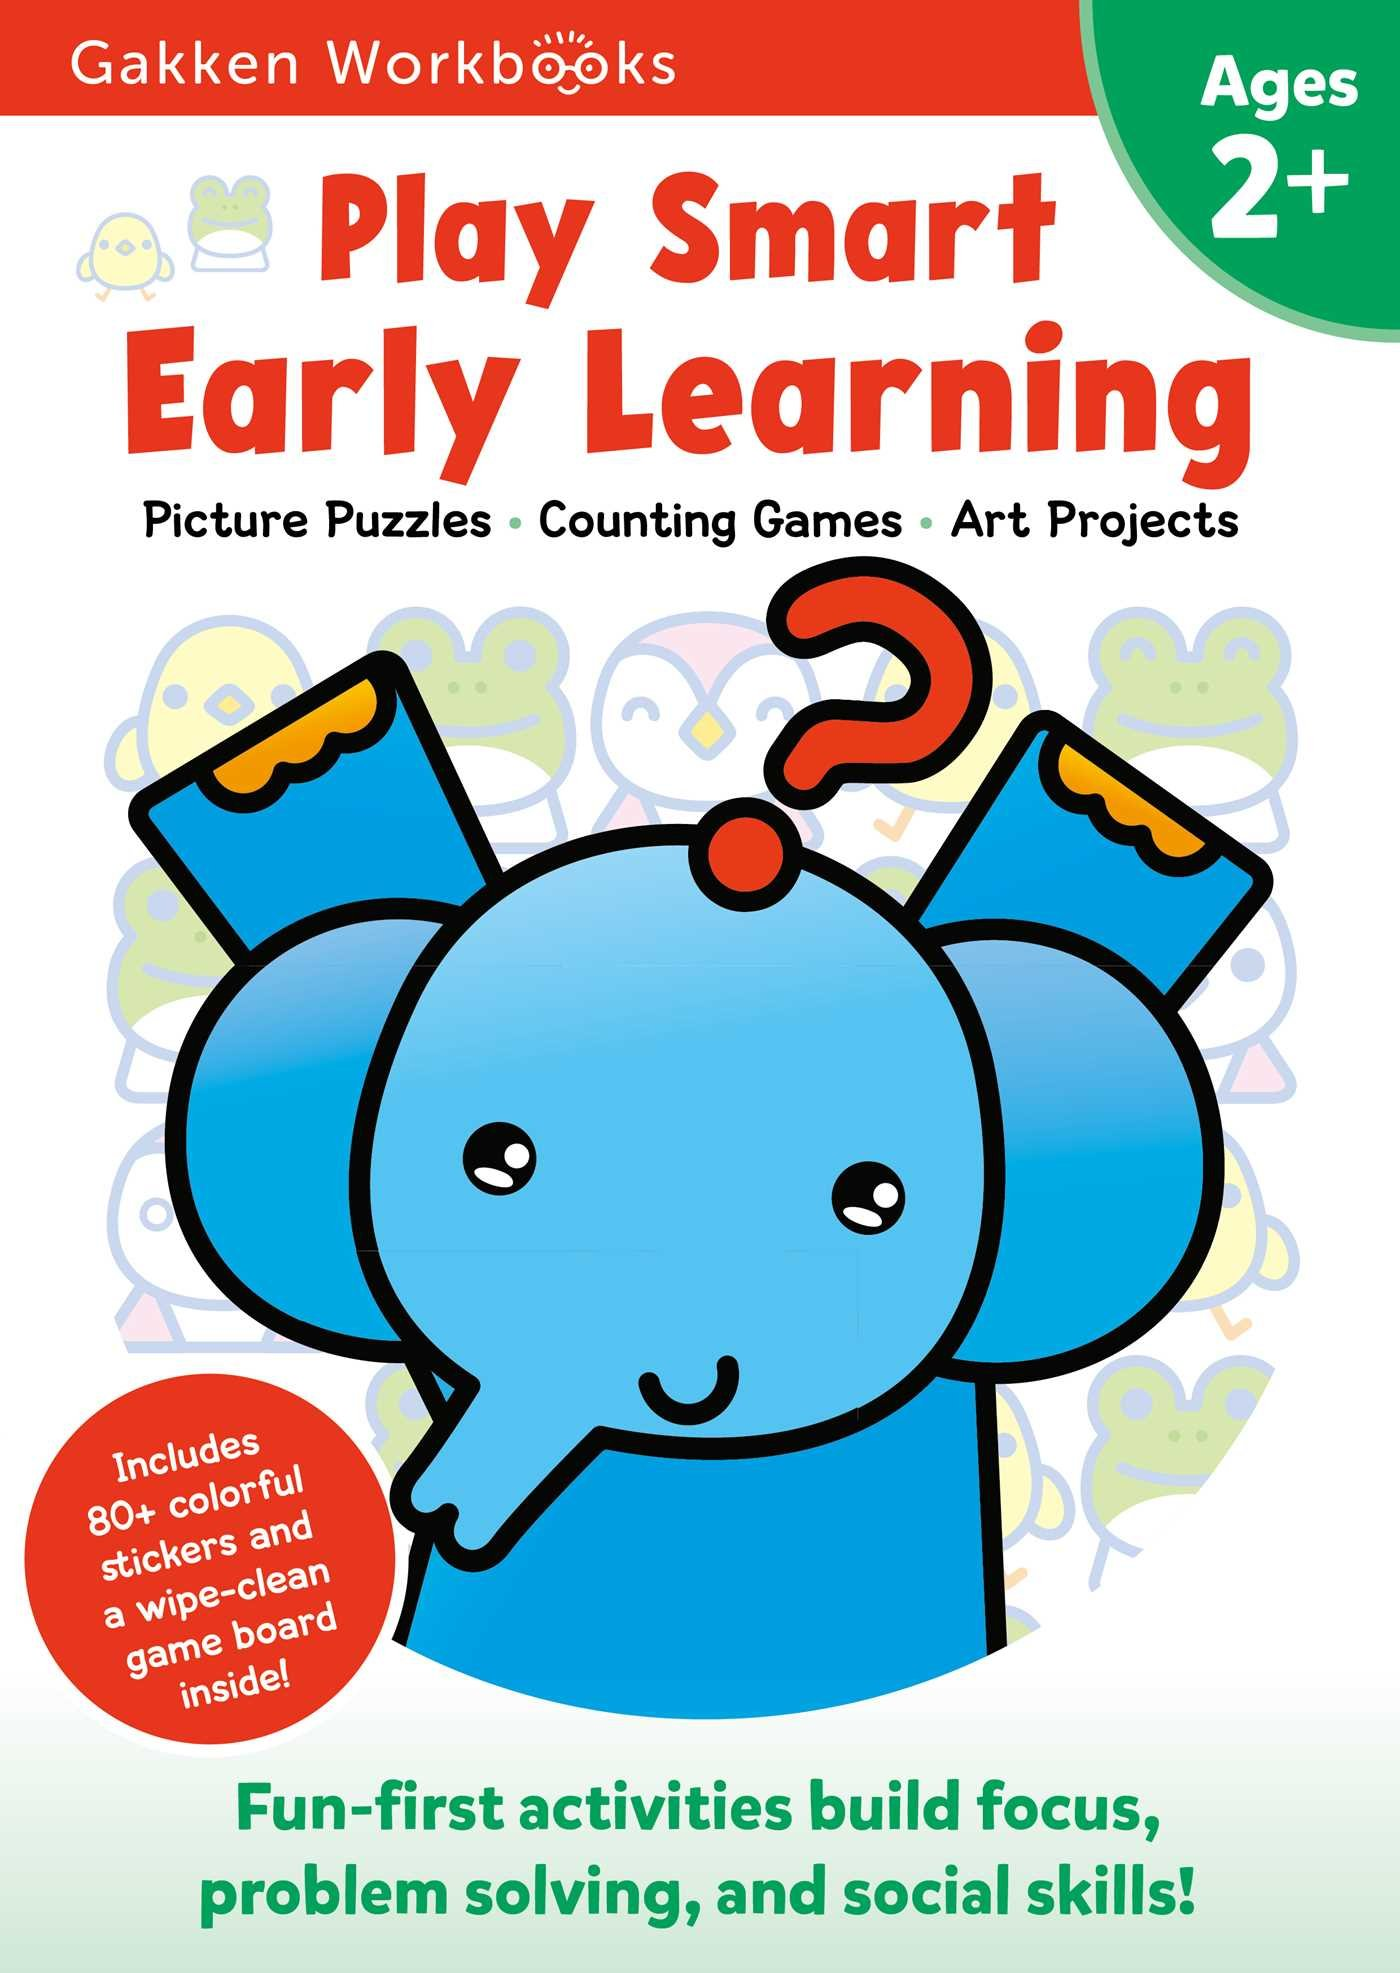 Play Smart Early Learning 2+: Early Childhood Education Experts ...